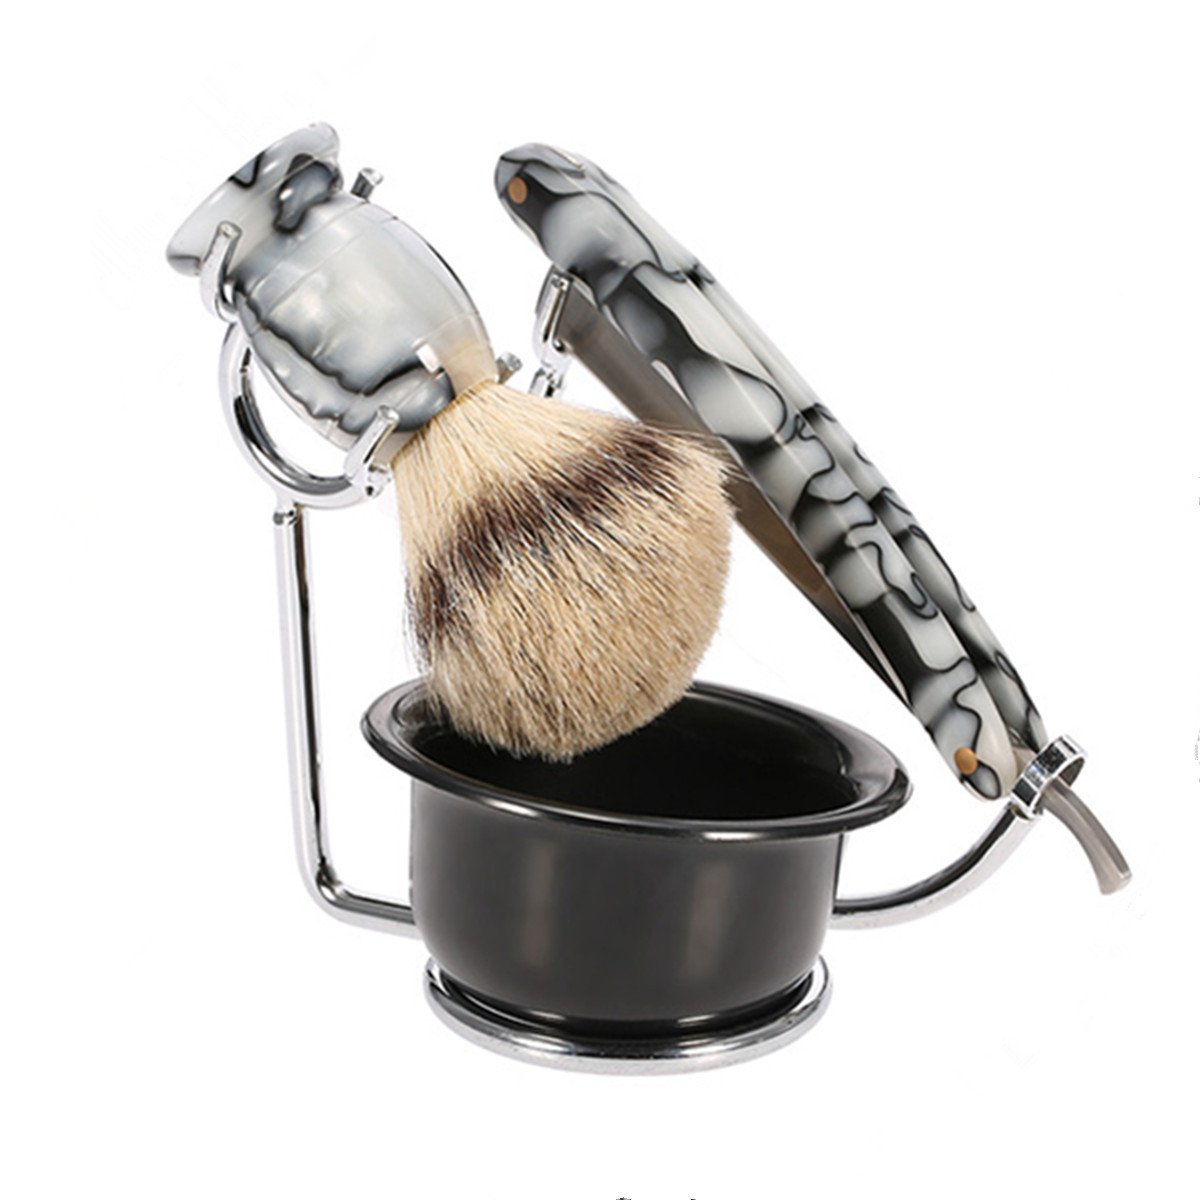 Anself 4 in 1 Men's Shaving Razor Set Pure Badger Shaving Brush + Stainless Steel Shaving Stand + Shaving Soap Bowl + Razor W3908-HMMFBA